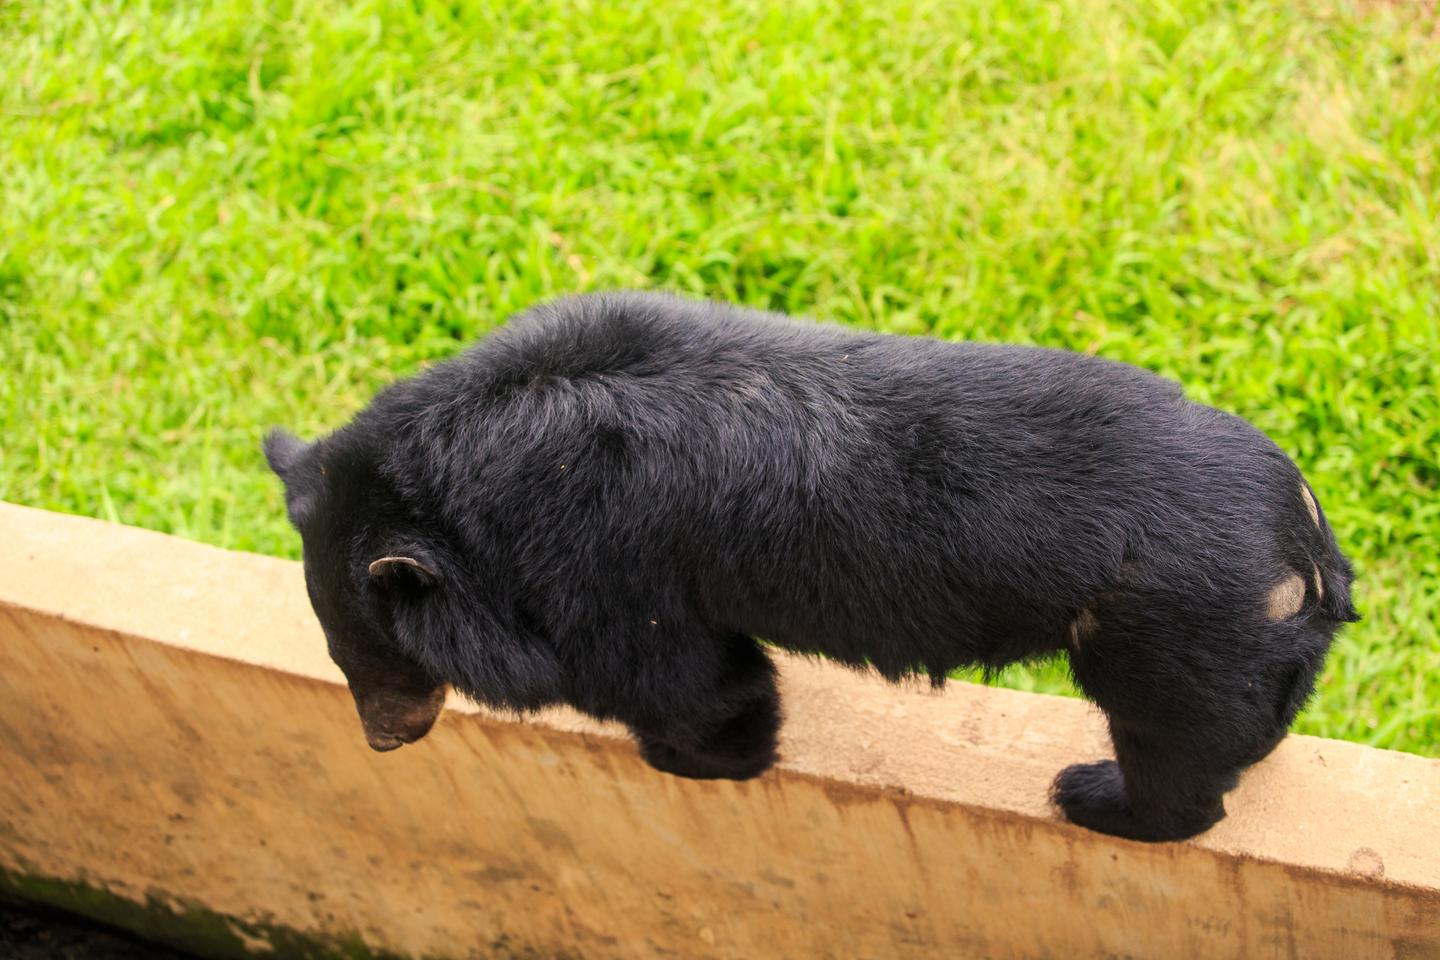 Trump's wall between Texas and Mexico poses a threat to plants and animals, including the black bear